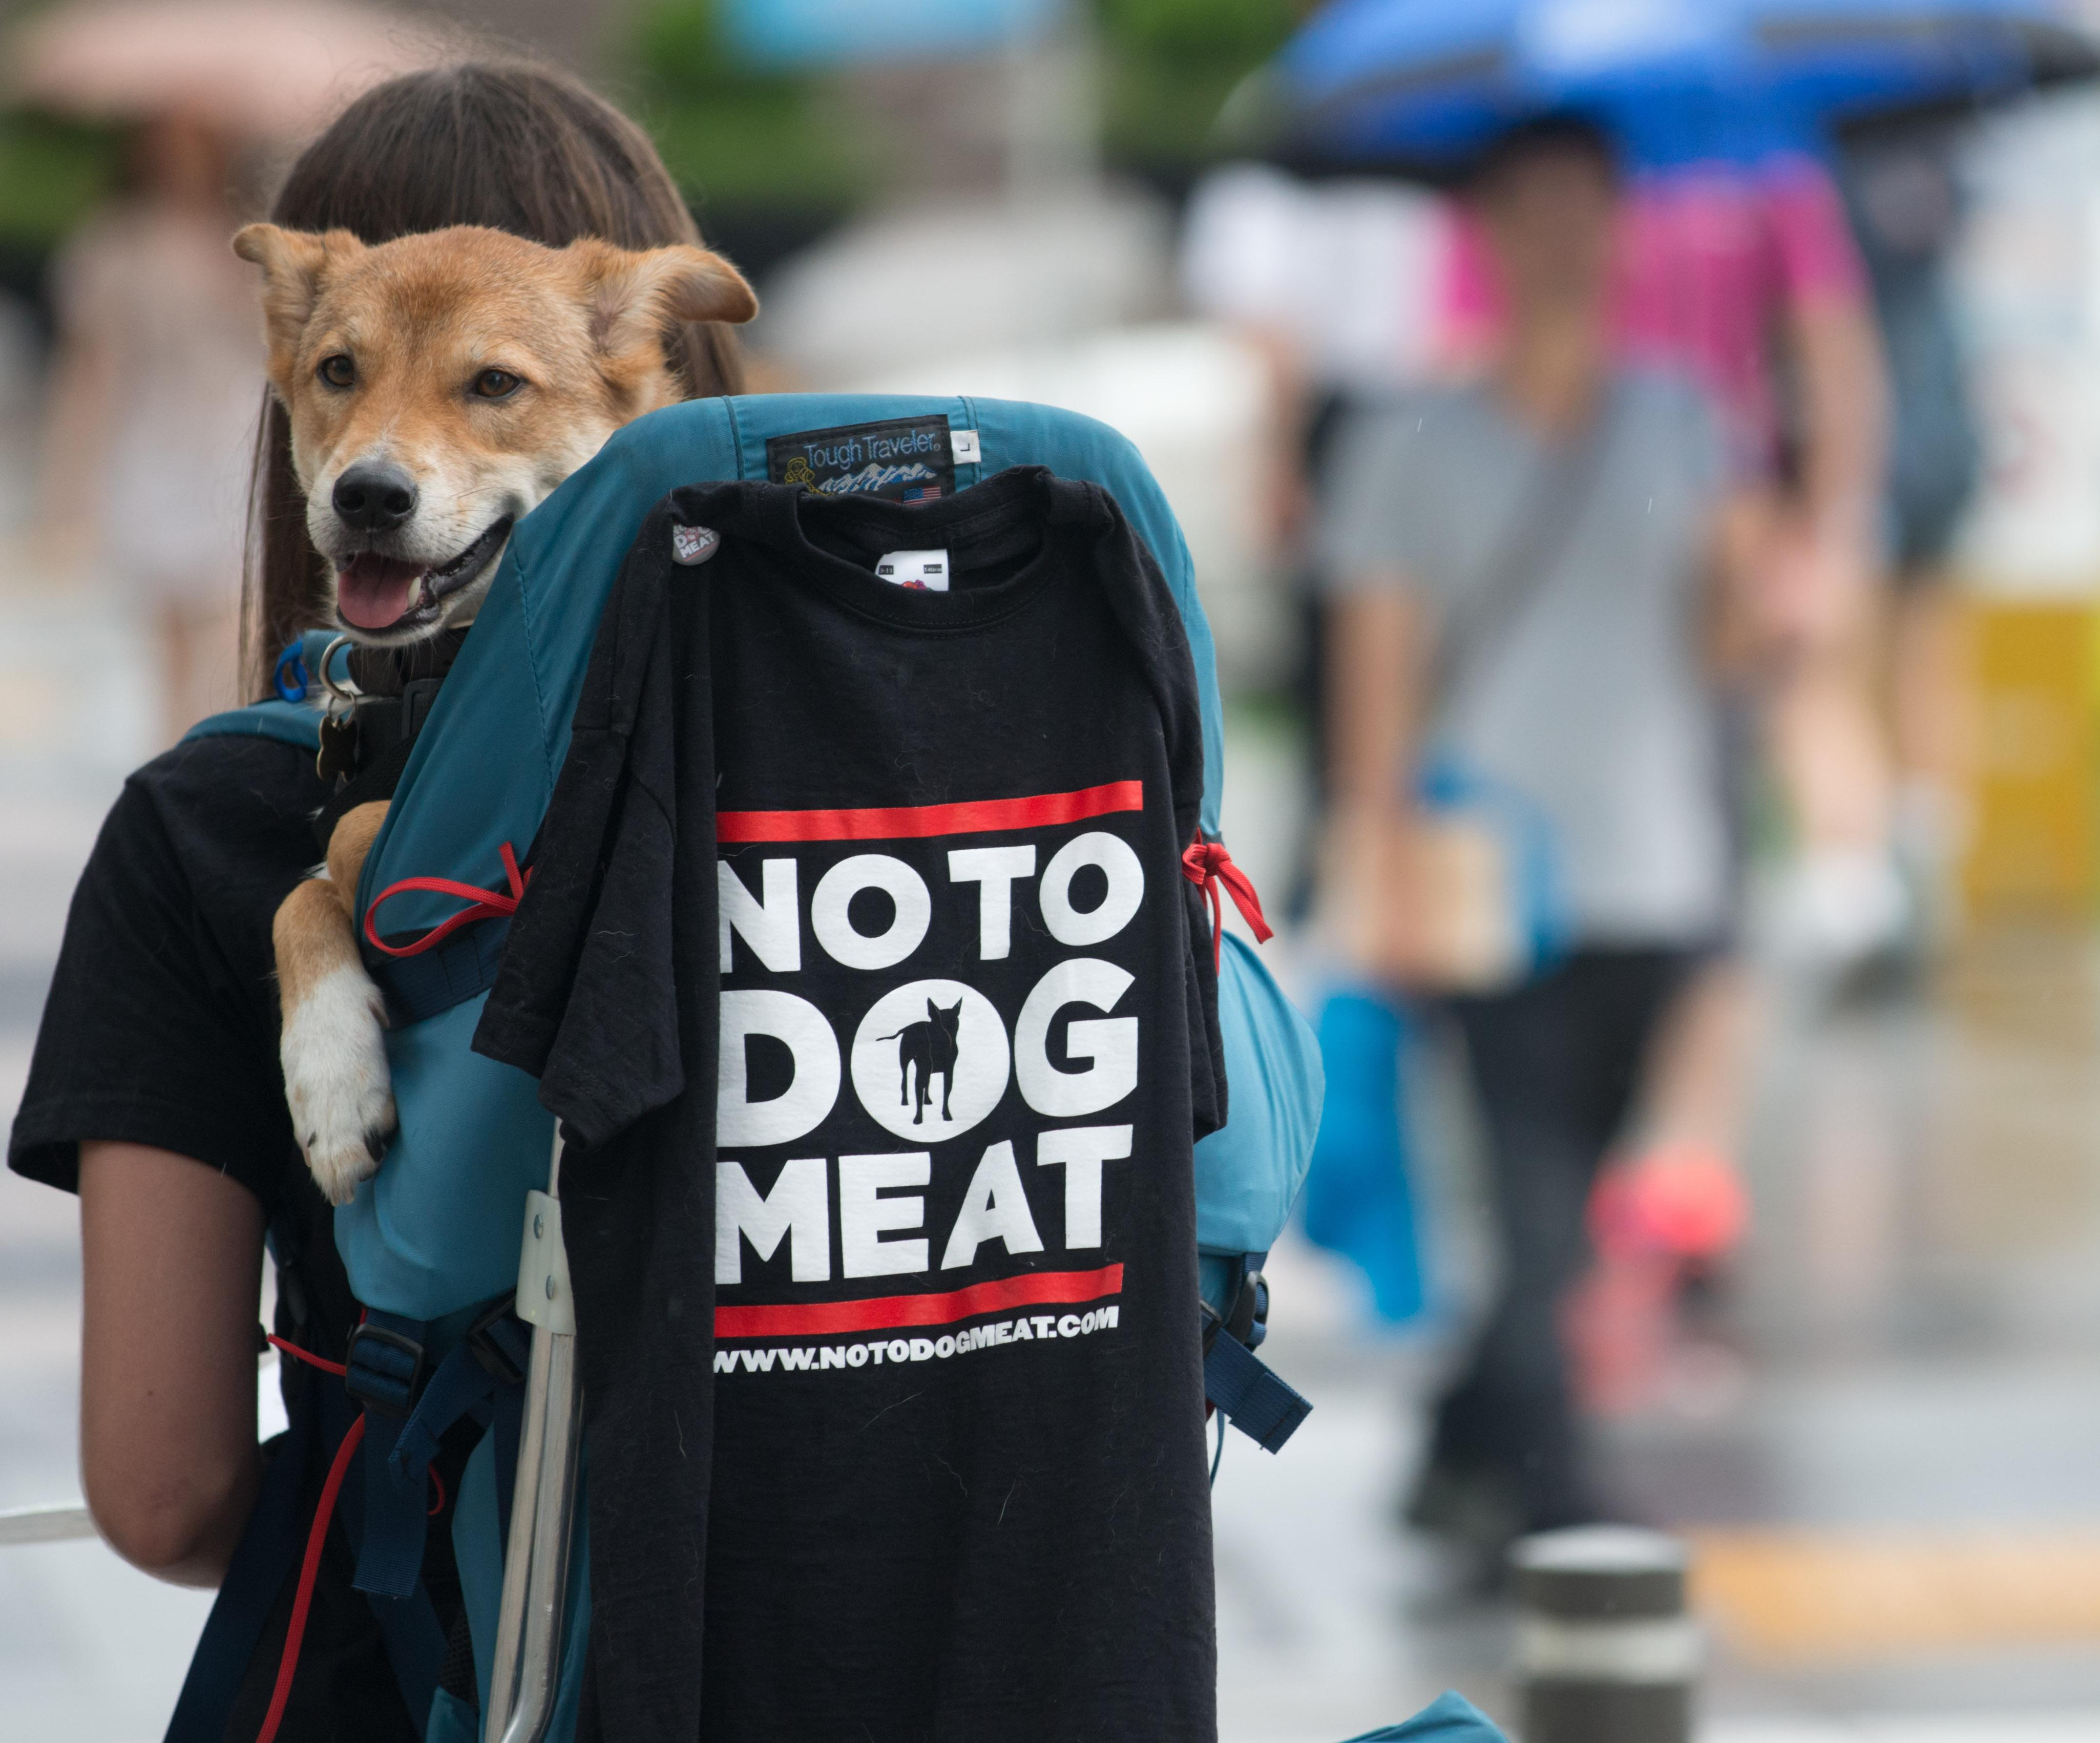 People in This Country Eat Dogs